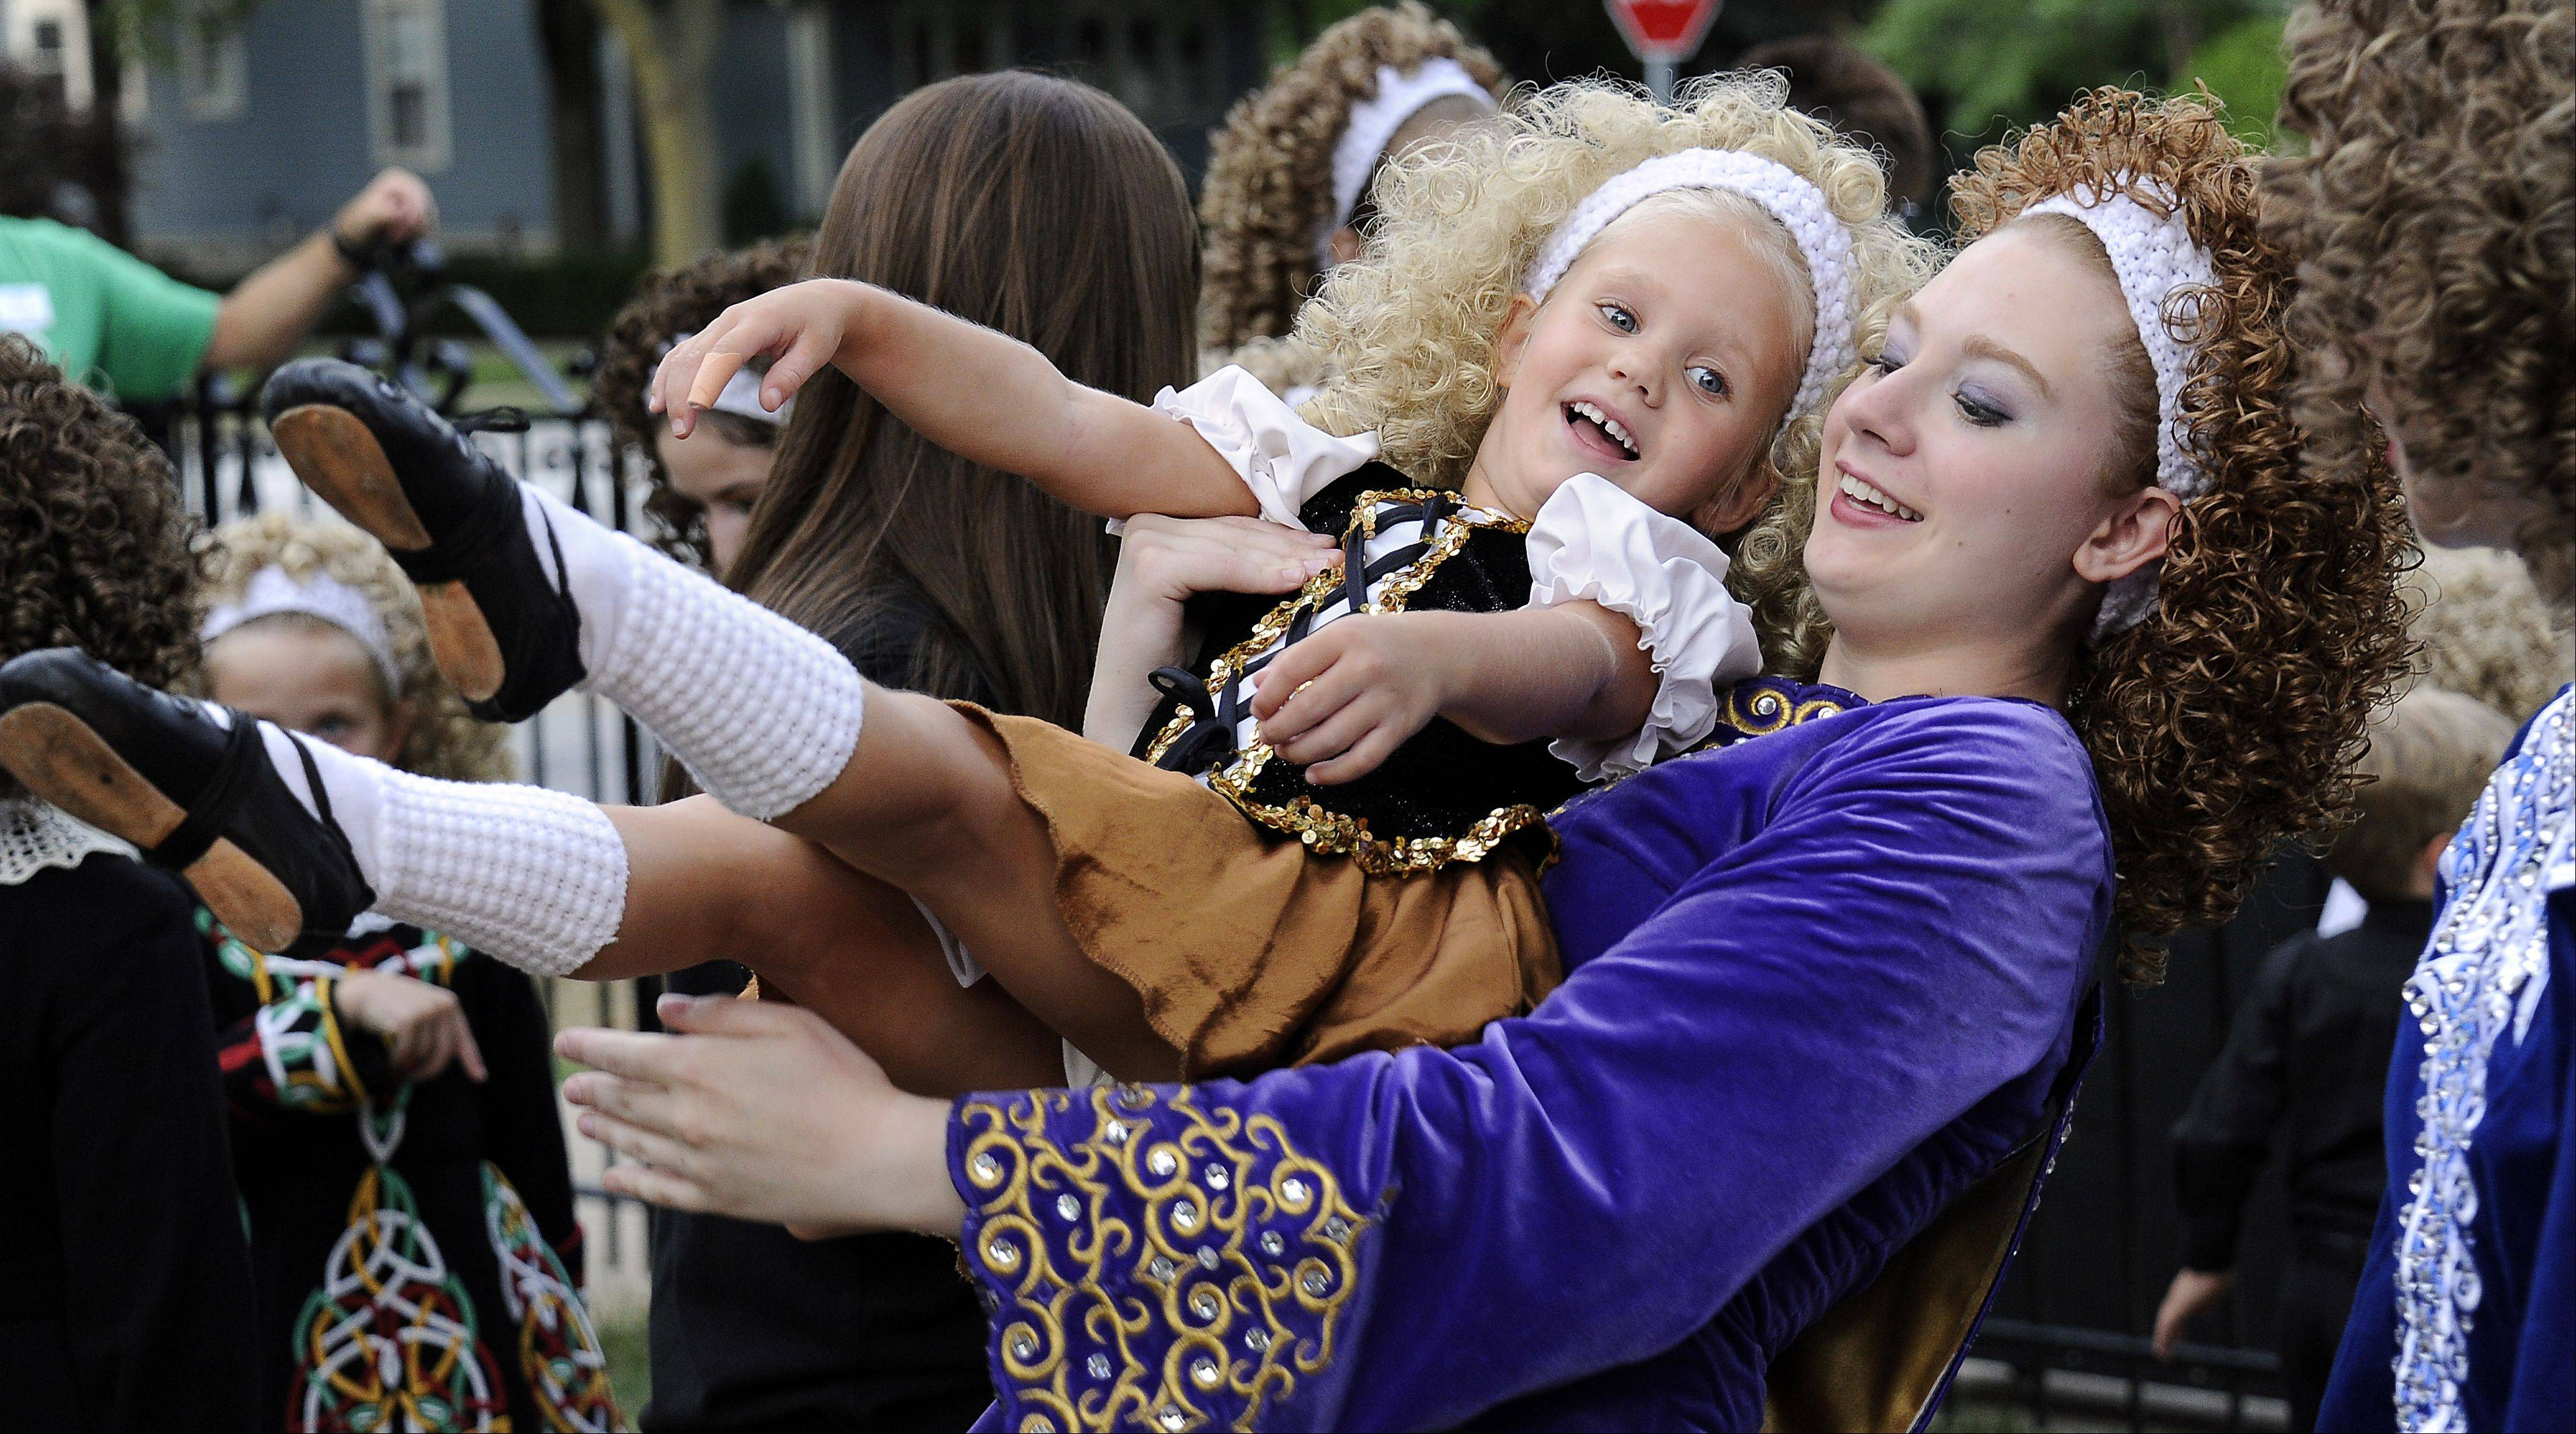 Erin Coleman, left, and Fiona Helgren dance around waiting to perform with the Trinity Dancers at last year's fest.